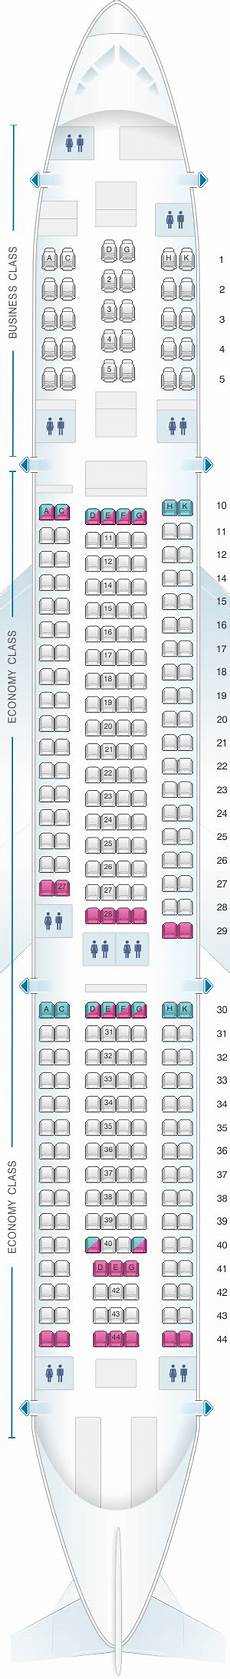 Airbus A380 Seating Chart Asiana Seat Map Asiana Airlines Airbus A330 300 290pax Seatmaestro